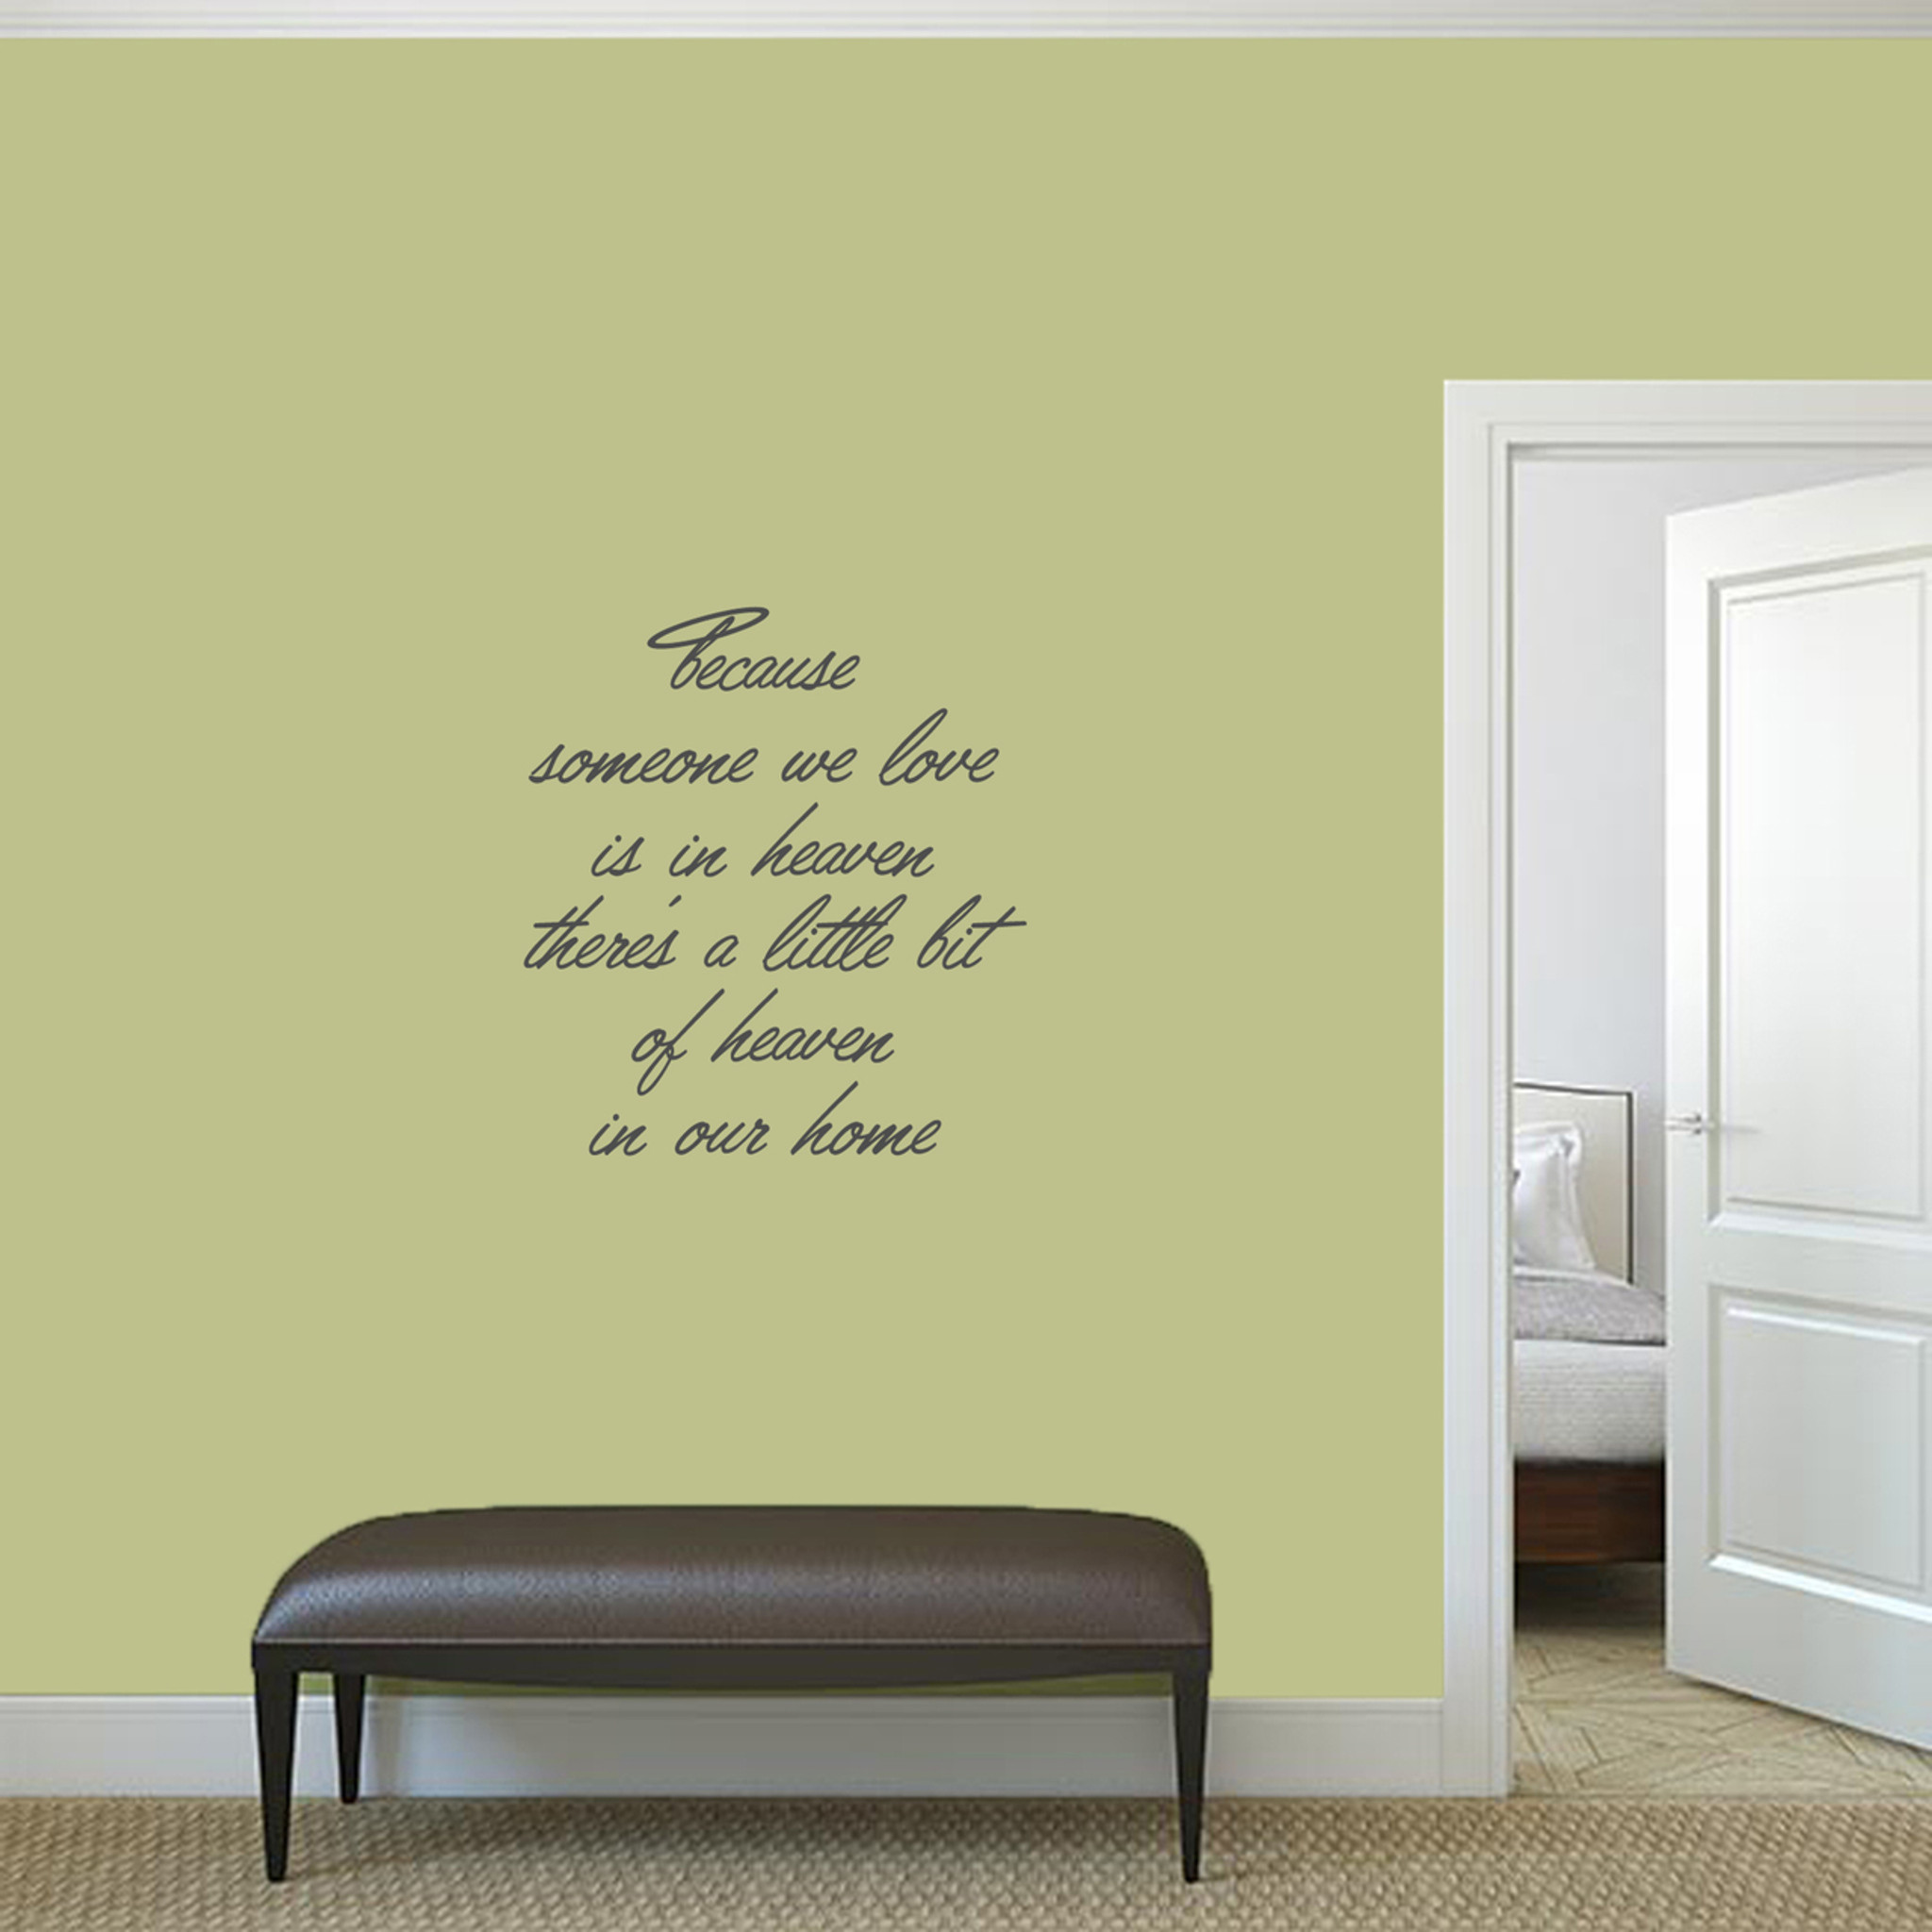 Heaven In Our Home Wall Decals Wall Decor Stickers